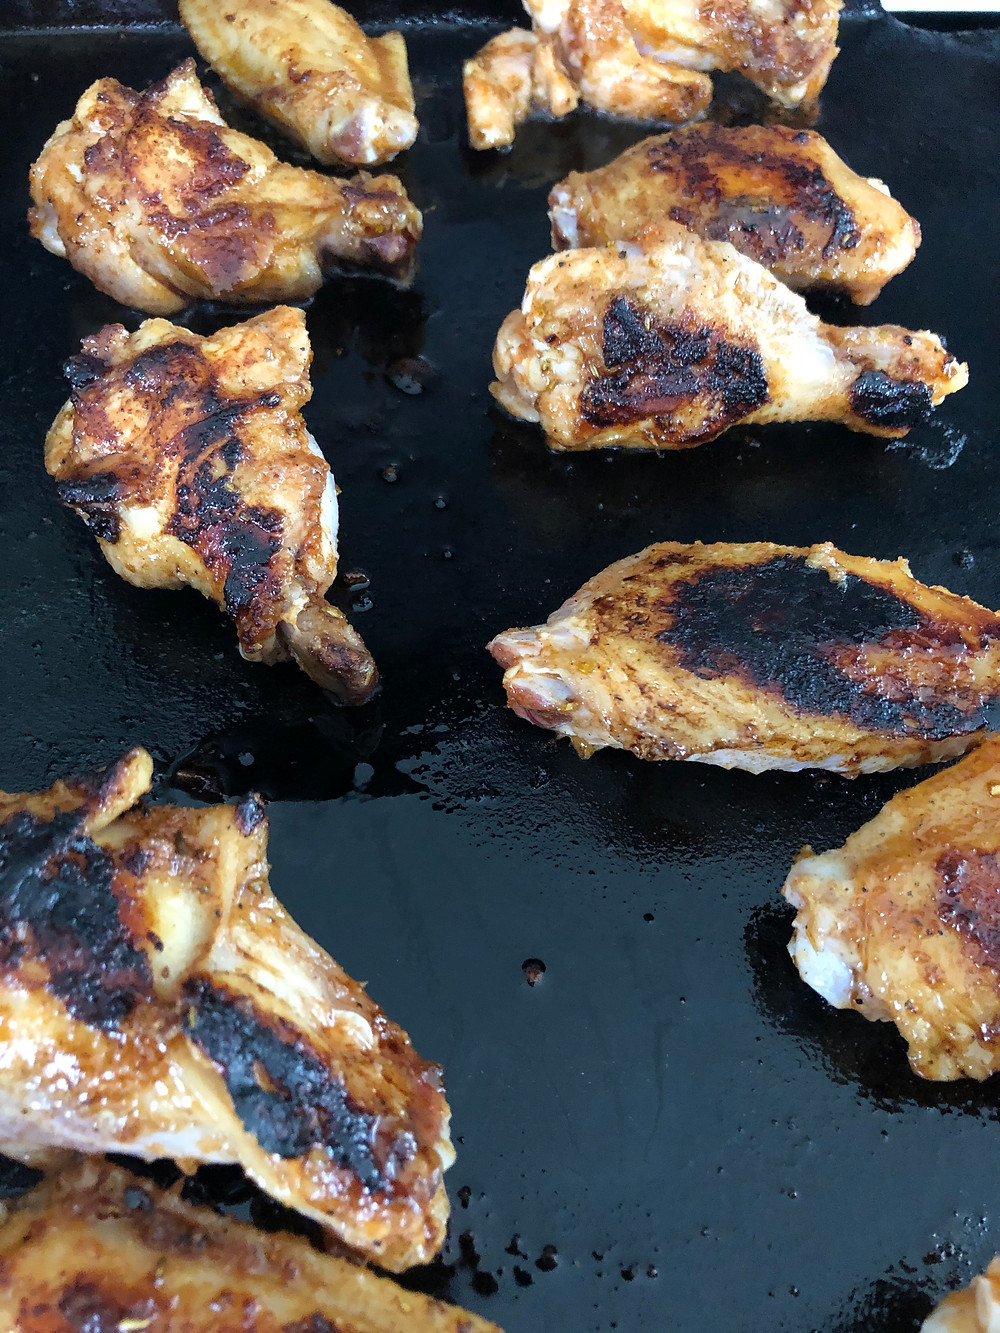 Seasoned chicken wings with a brown and black charred coat, cook on a black griddle.